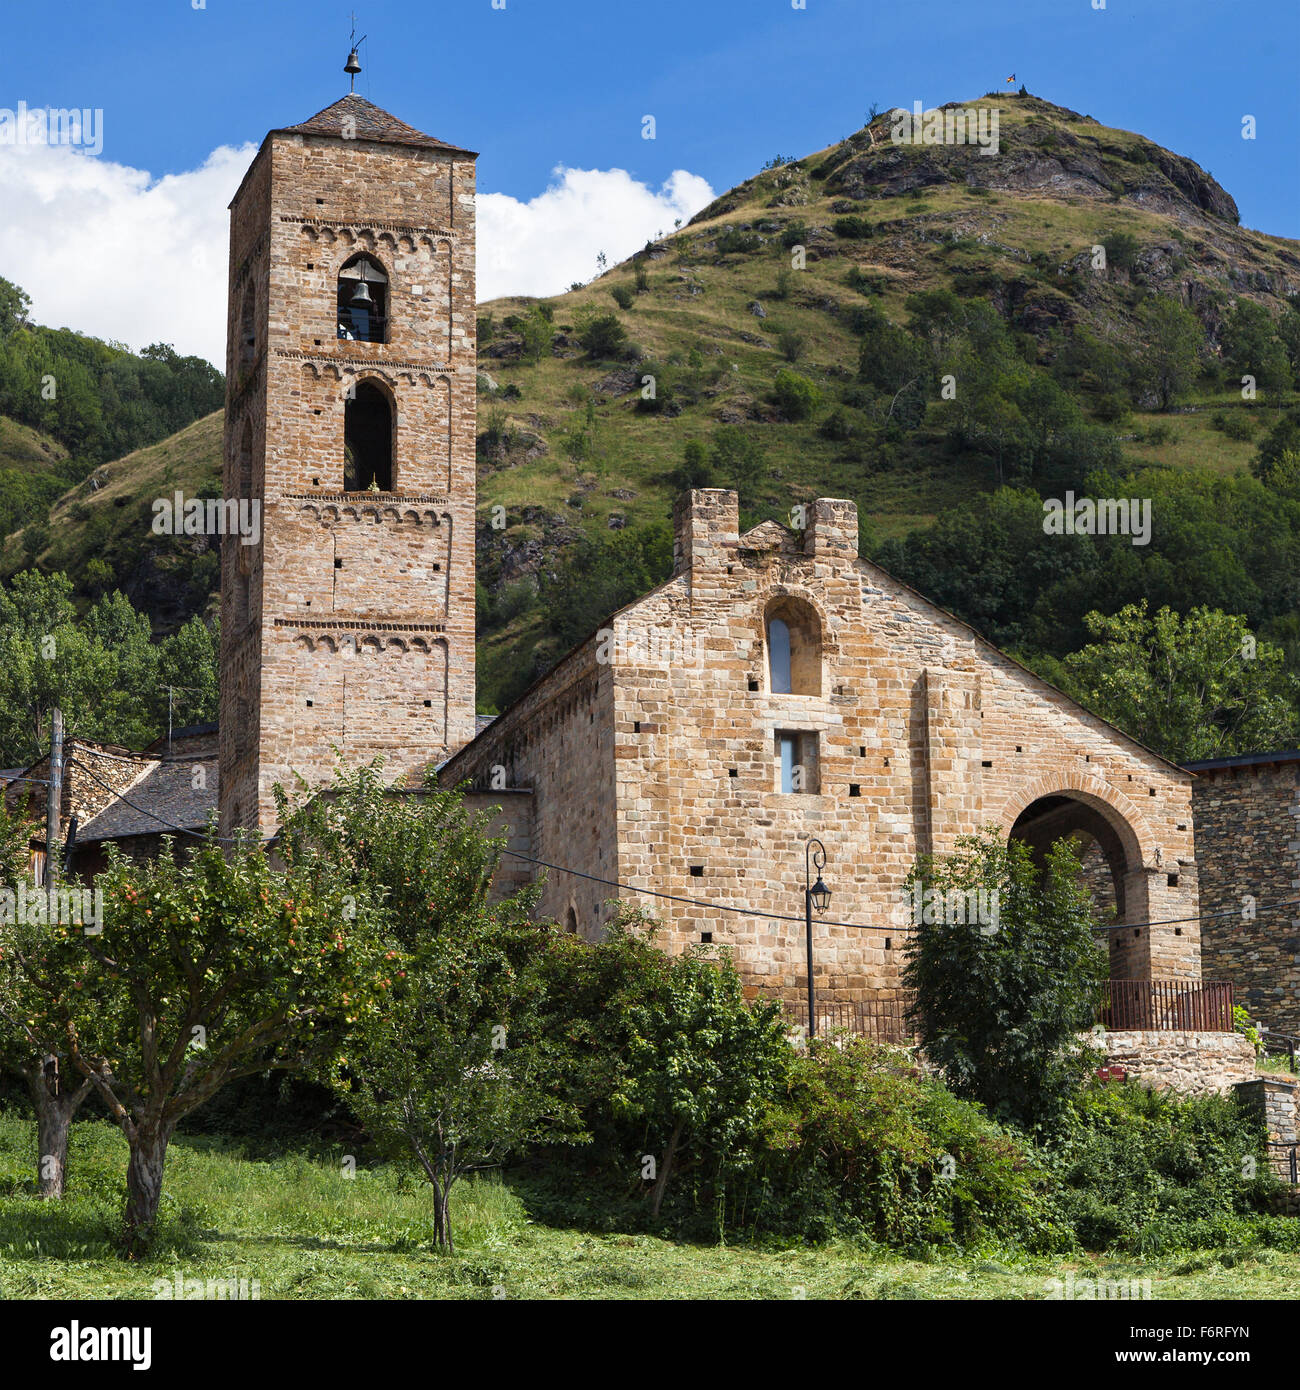 Romanesque church of La Nativitat in Durro, Vall de Boi, Catalonia. - Stock Image